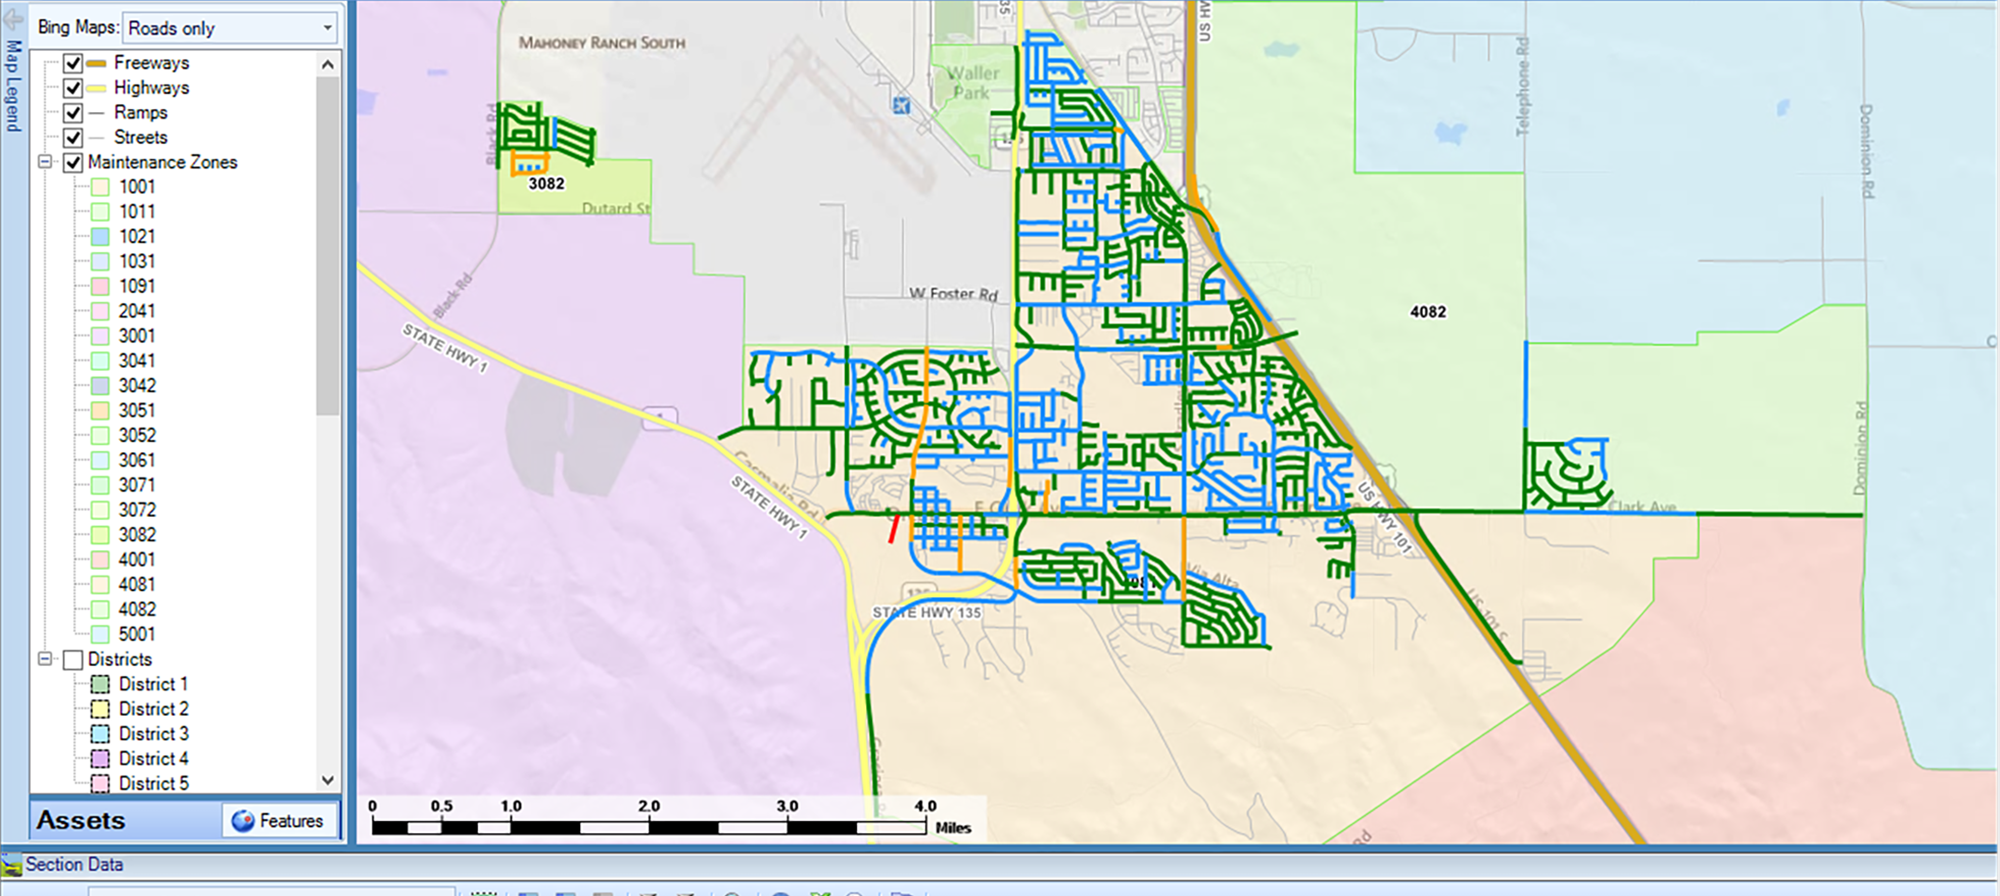 A map from the StreetSaver(R) tool